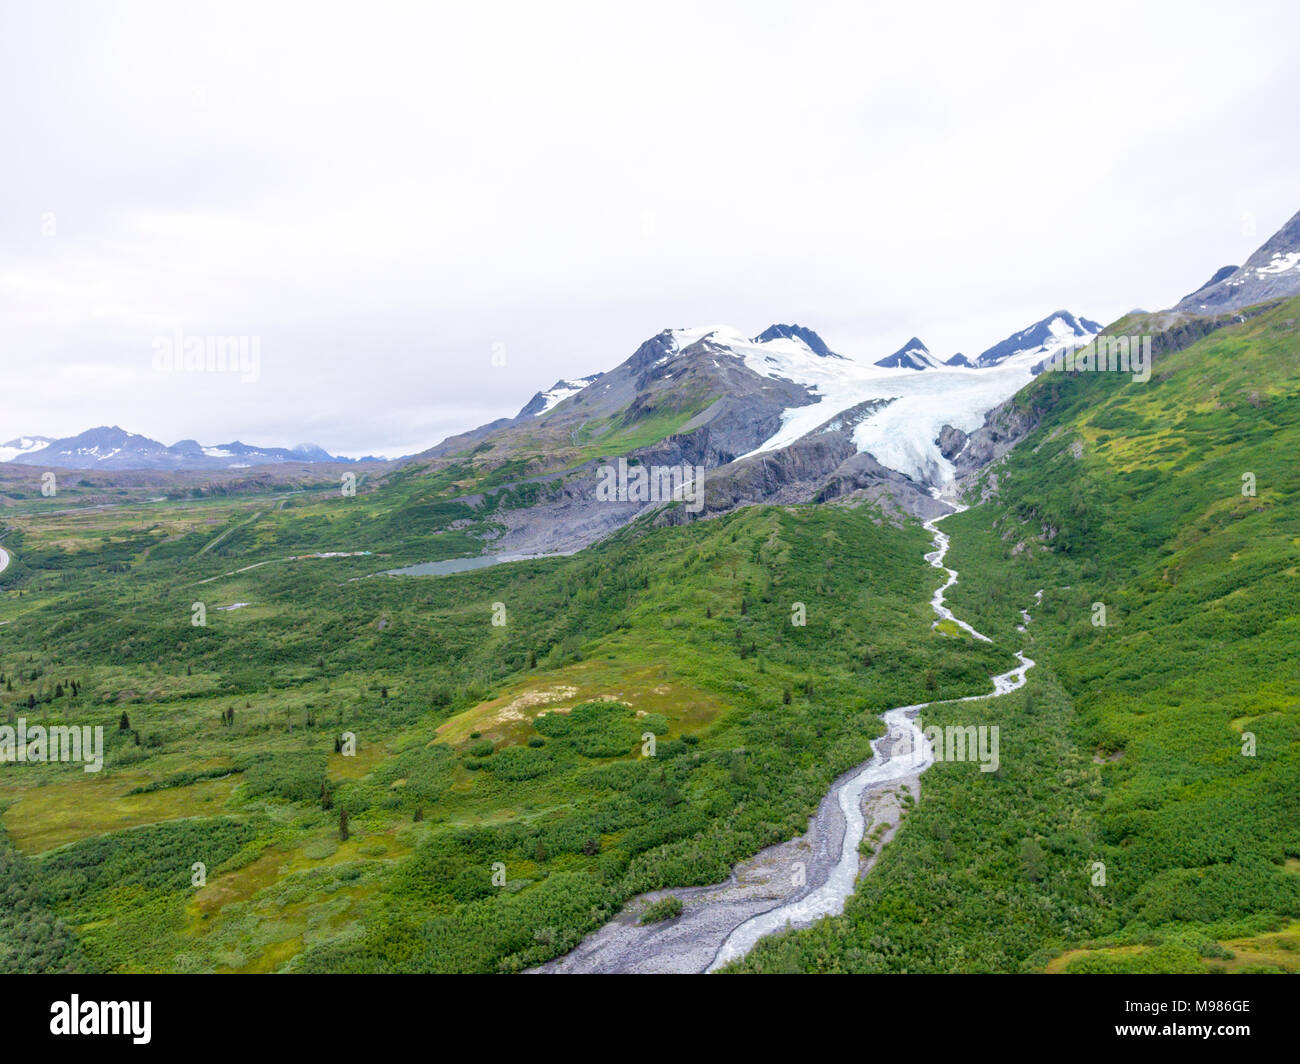 USA, Alaska, Aerial view of Worthington Glacier, Chugach Mountains - Stock Image